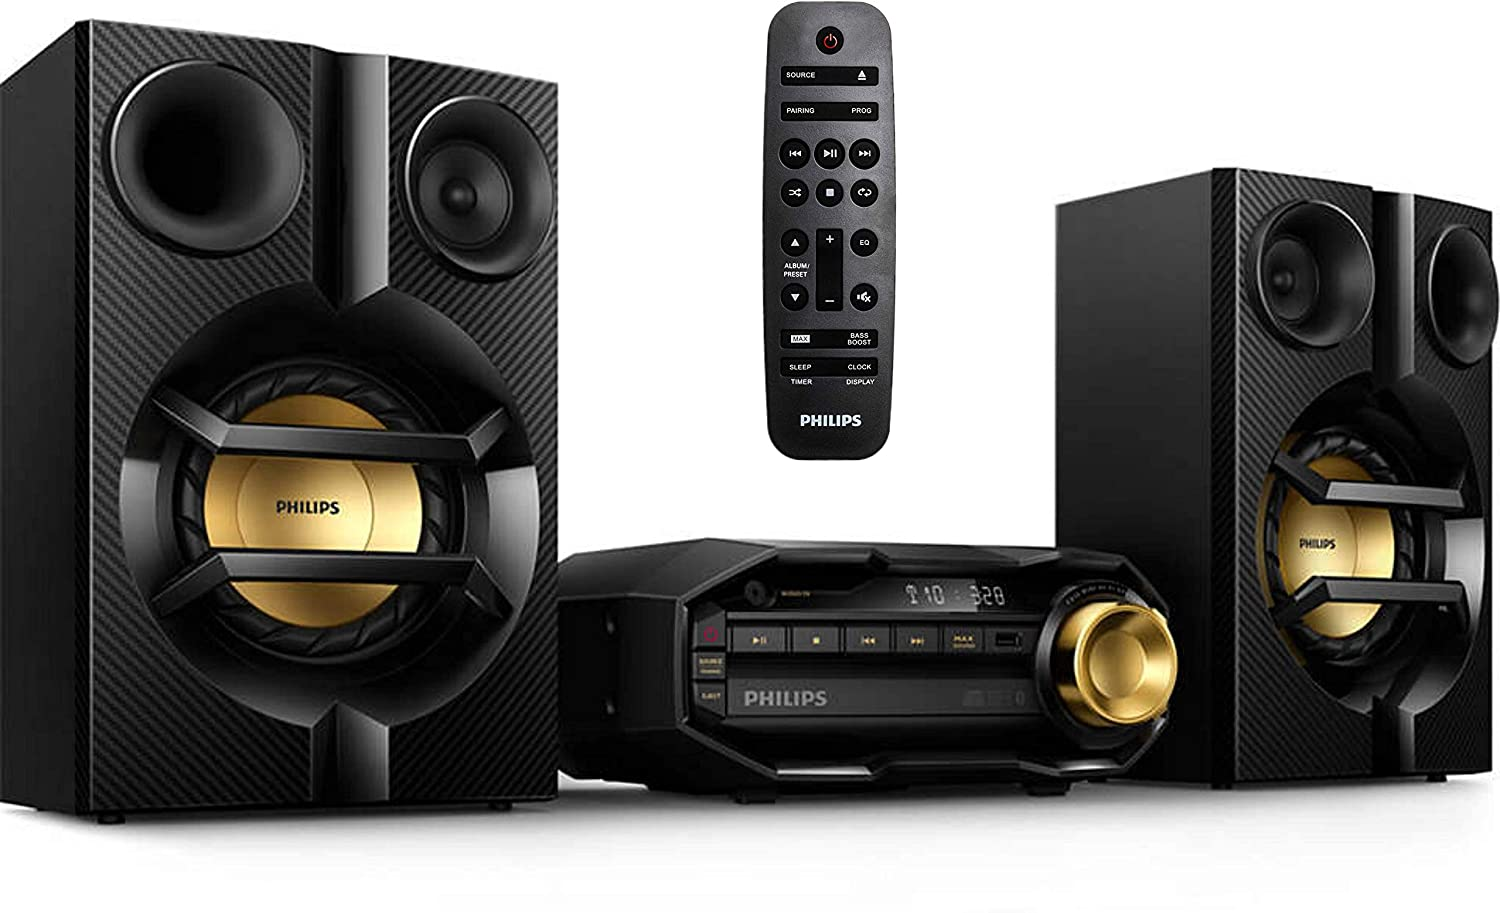 Philips FX10 Bluetooth Stereo System